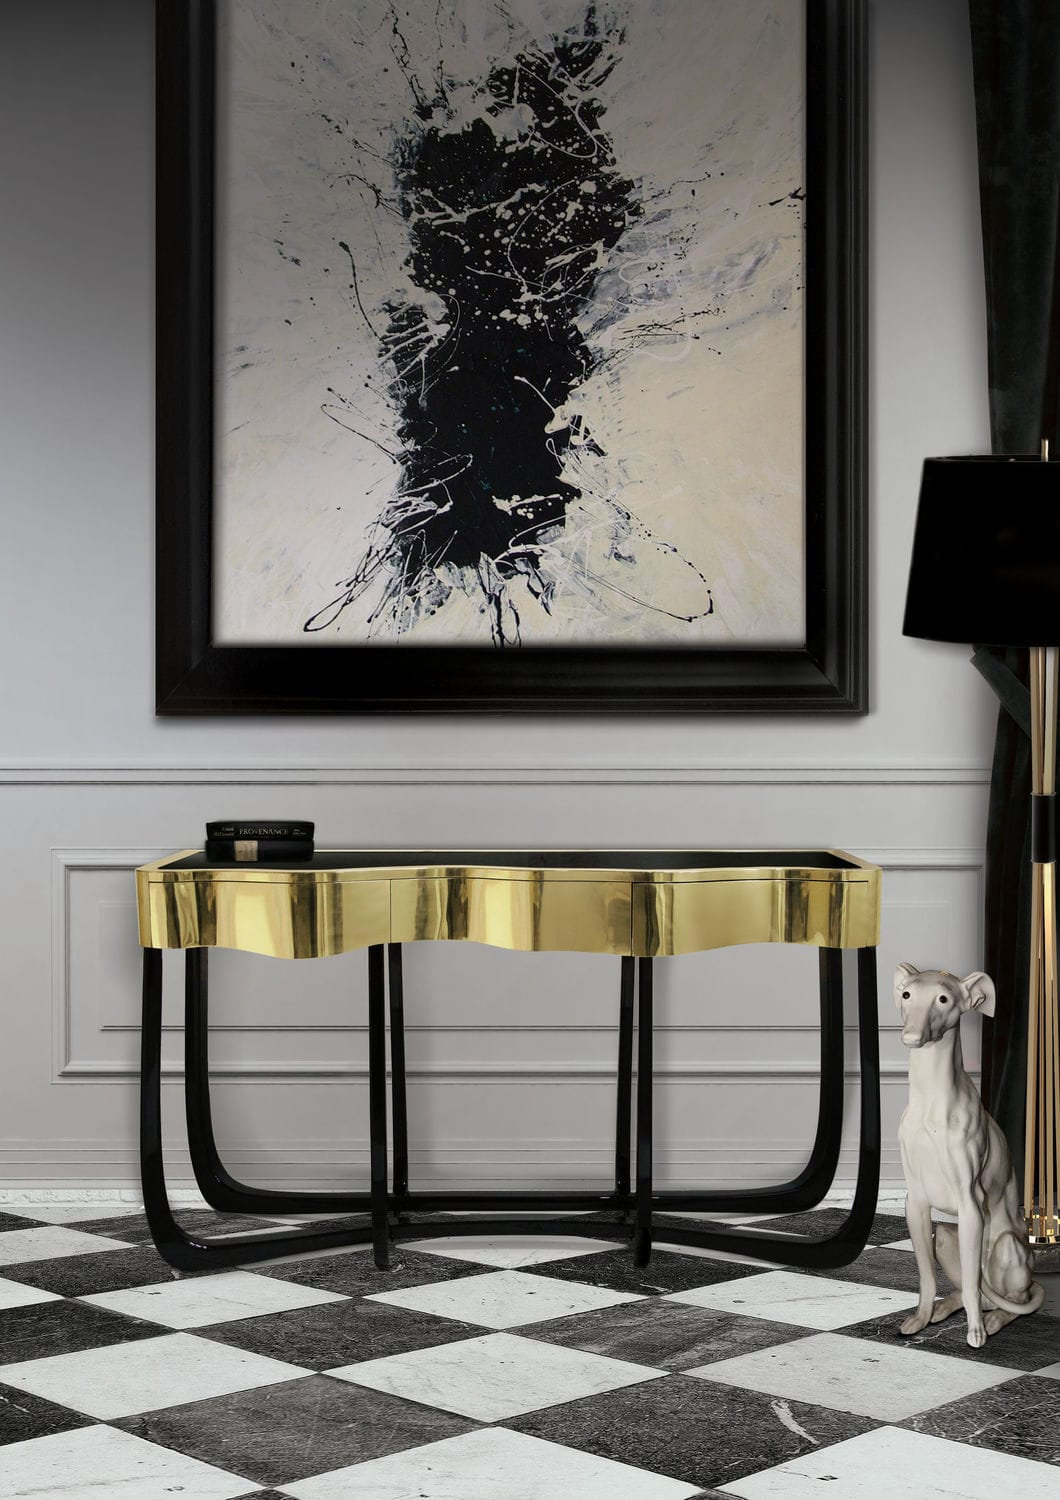 10 Amazing Modern Console Tables for Your Living Room Design modern console tables 10 Amazing Modern Console Tables for Your Living Room Design Console Table for Your Living Room Design8